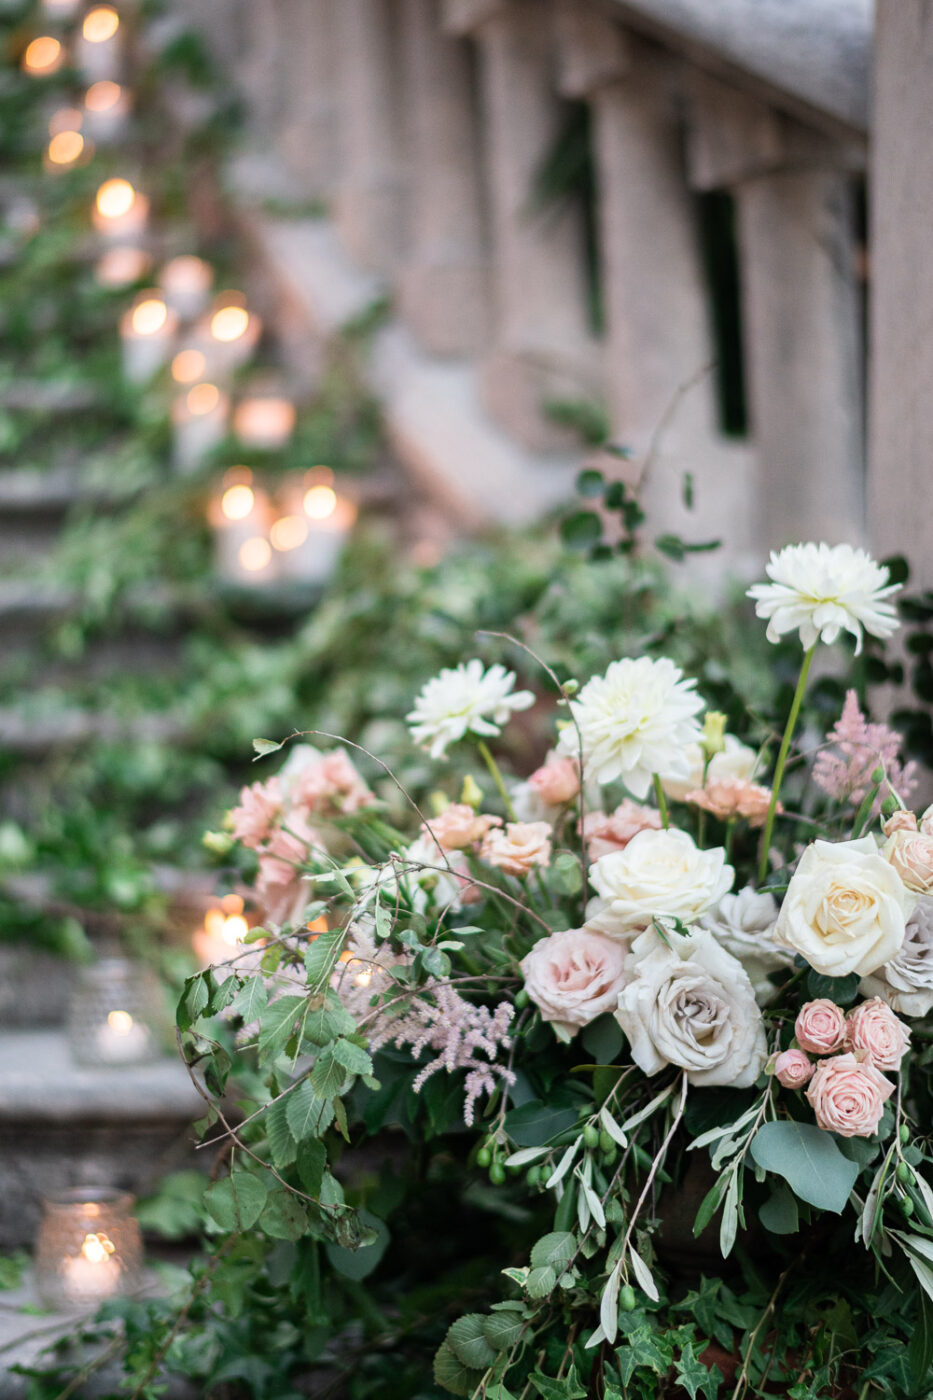 Floral arrangements and twinkling candles with ivy crawling up a historic castle staircase at CastelBrando in Treviso Italy by luxury wedding photographer Francesco Bognin